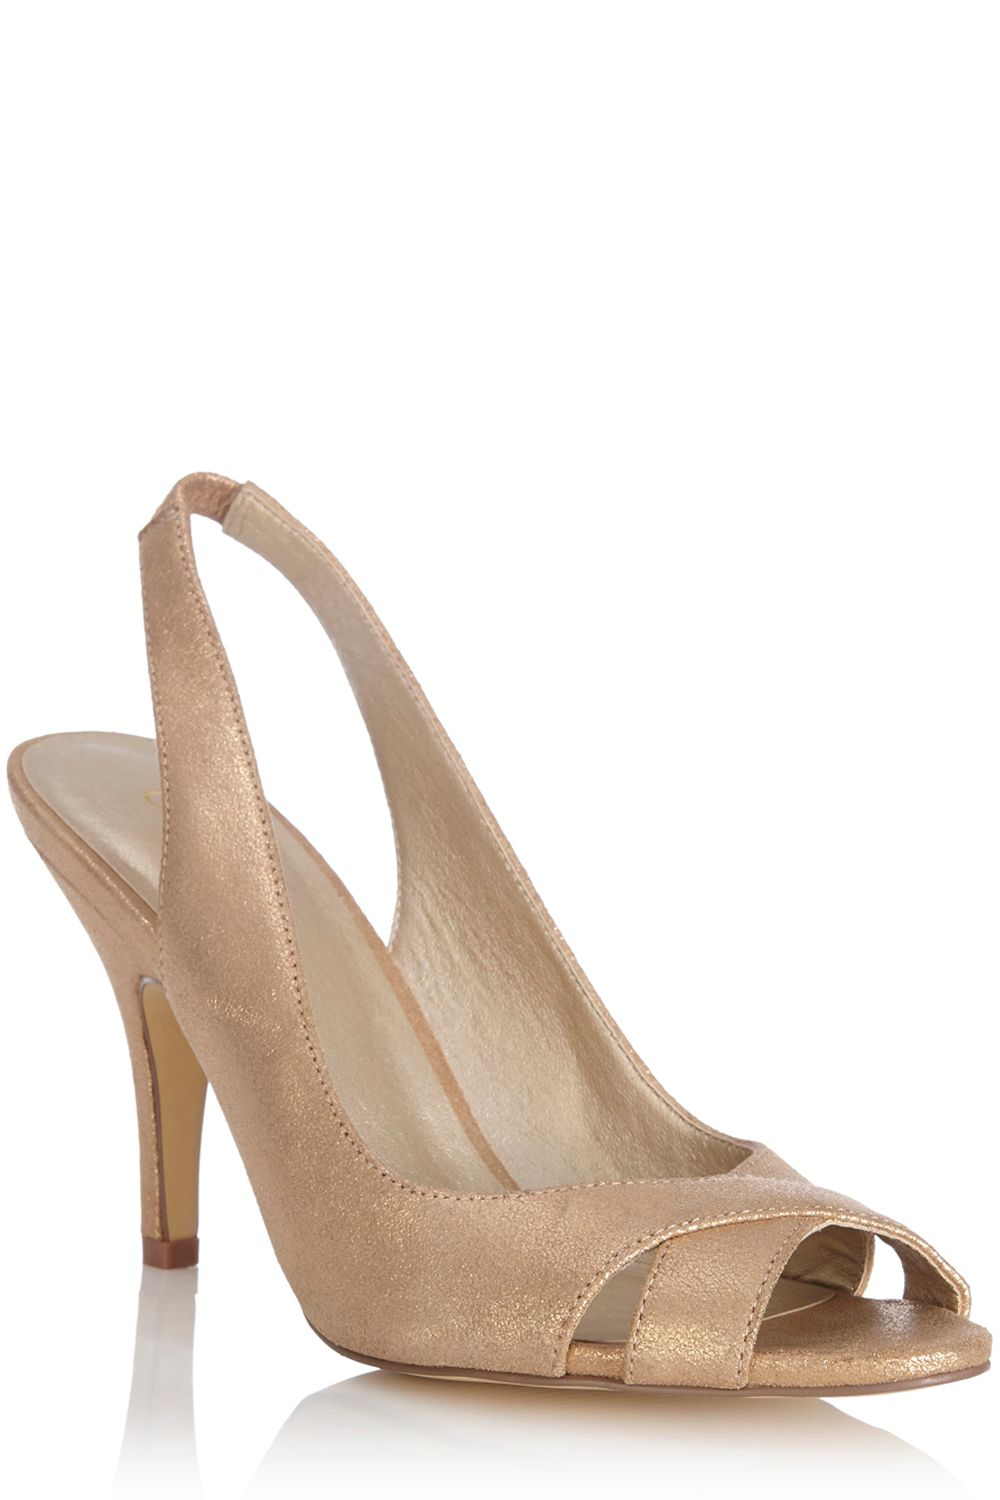 Peep toe leather sling back shoe